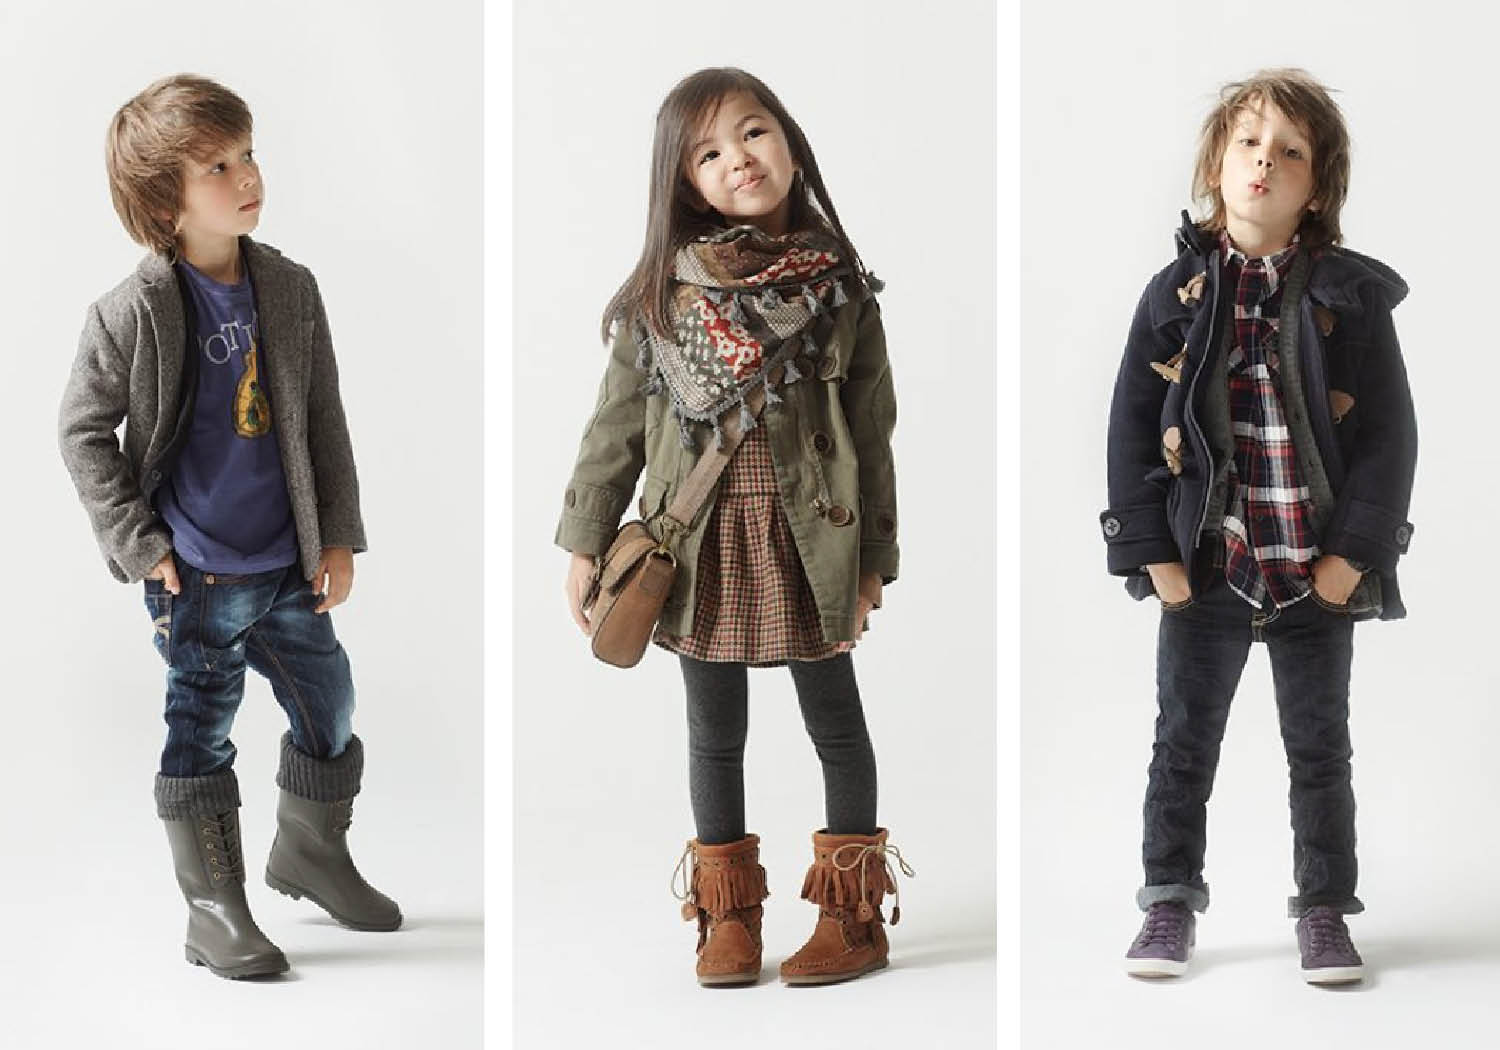 Hipster Kids Clothing Images & Pictures - Becuo